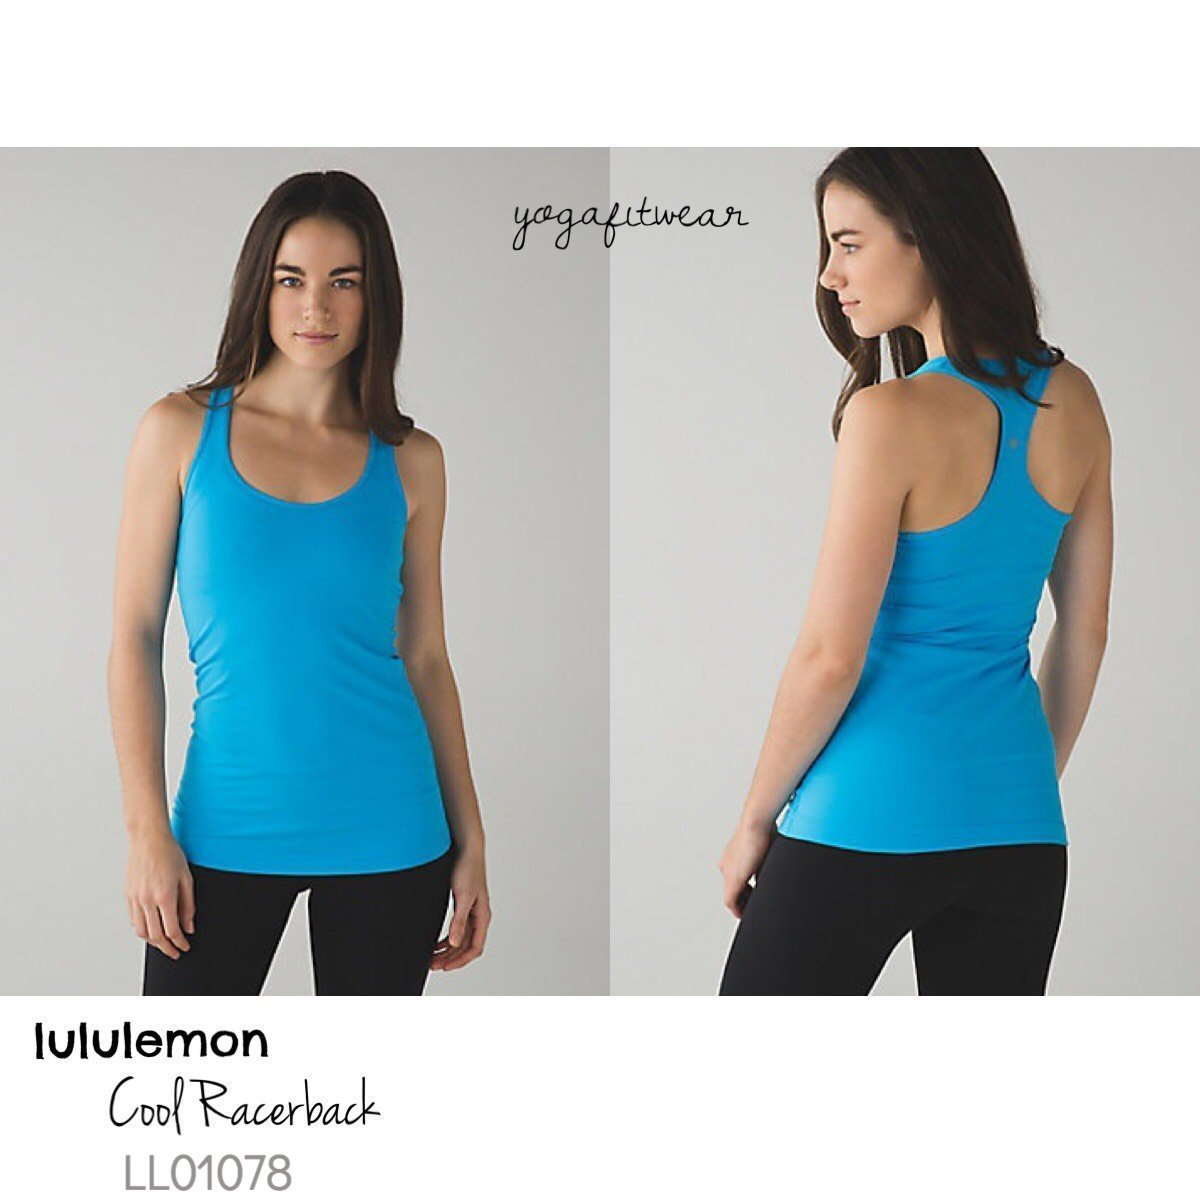 Lululemon - Cool Racerback (Kayak Blue) (LL01078)